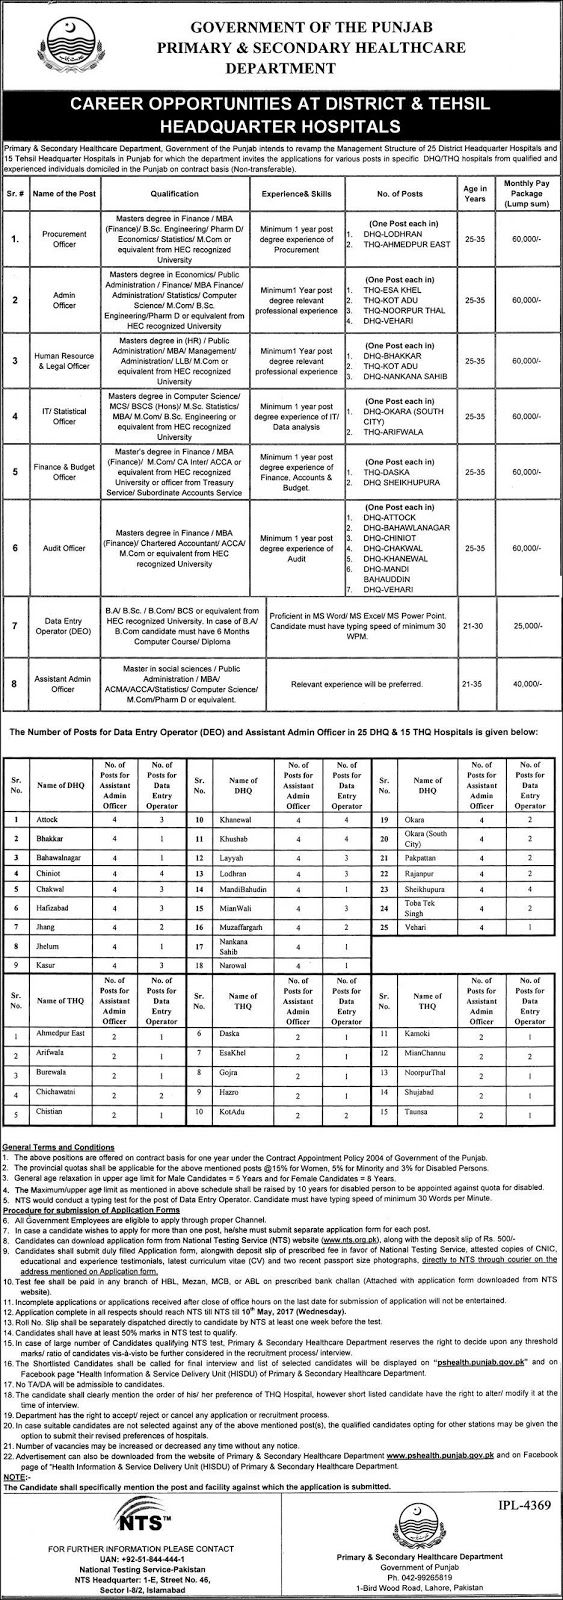 GOVERNMENT OF THE PUNJAB PRIMARY & SECONDARY HEALTHCARE DEPARTMENT CAREER OPPORTUNITIES AT DISTRICT & TEHSIL HEADQUARTER HOSPITALS Primary & Secondary Healthier Department Government of the Punjab intends to revamp the Management Structure of 25 District Headquarter Hospitals and 15 Teasel Headquarter Hospitals in Punjab for which the department invites the applications for various posts in specific DHQ/THQ hospitals from qualified and experienced individuals domiciled in the Punjab on…